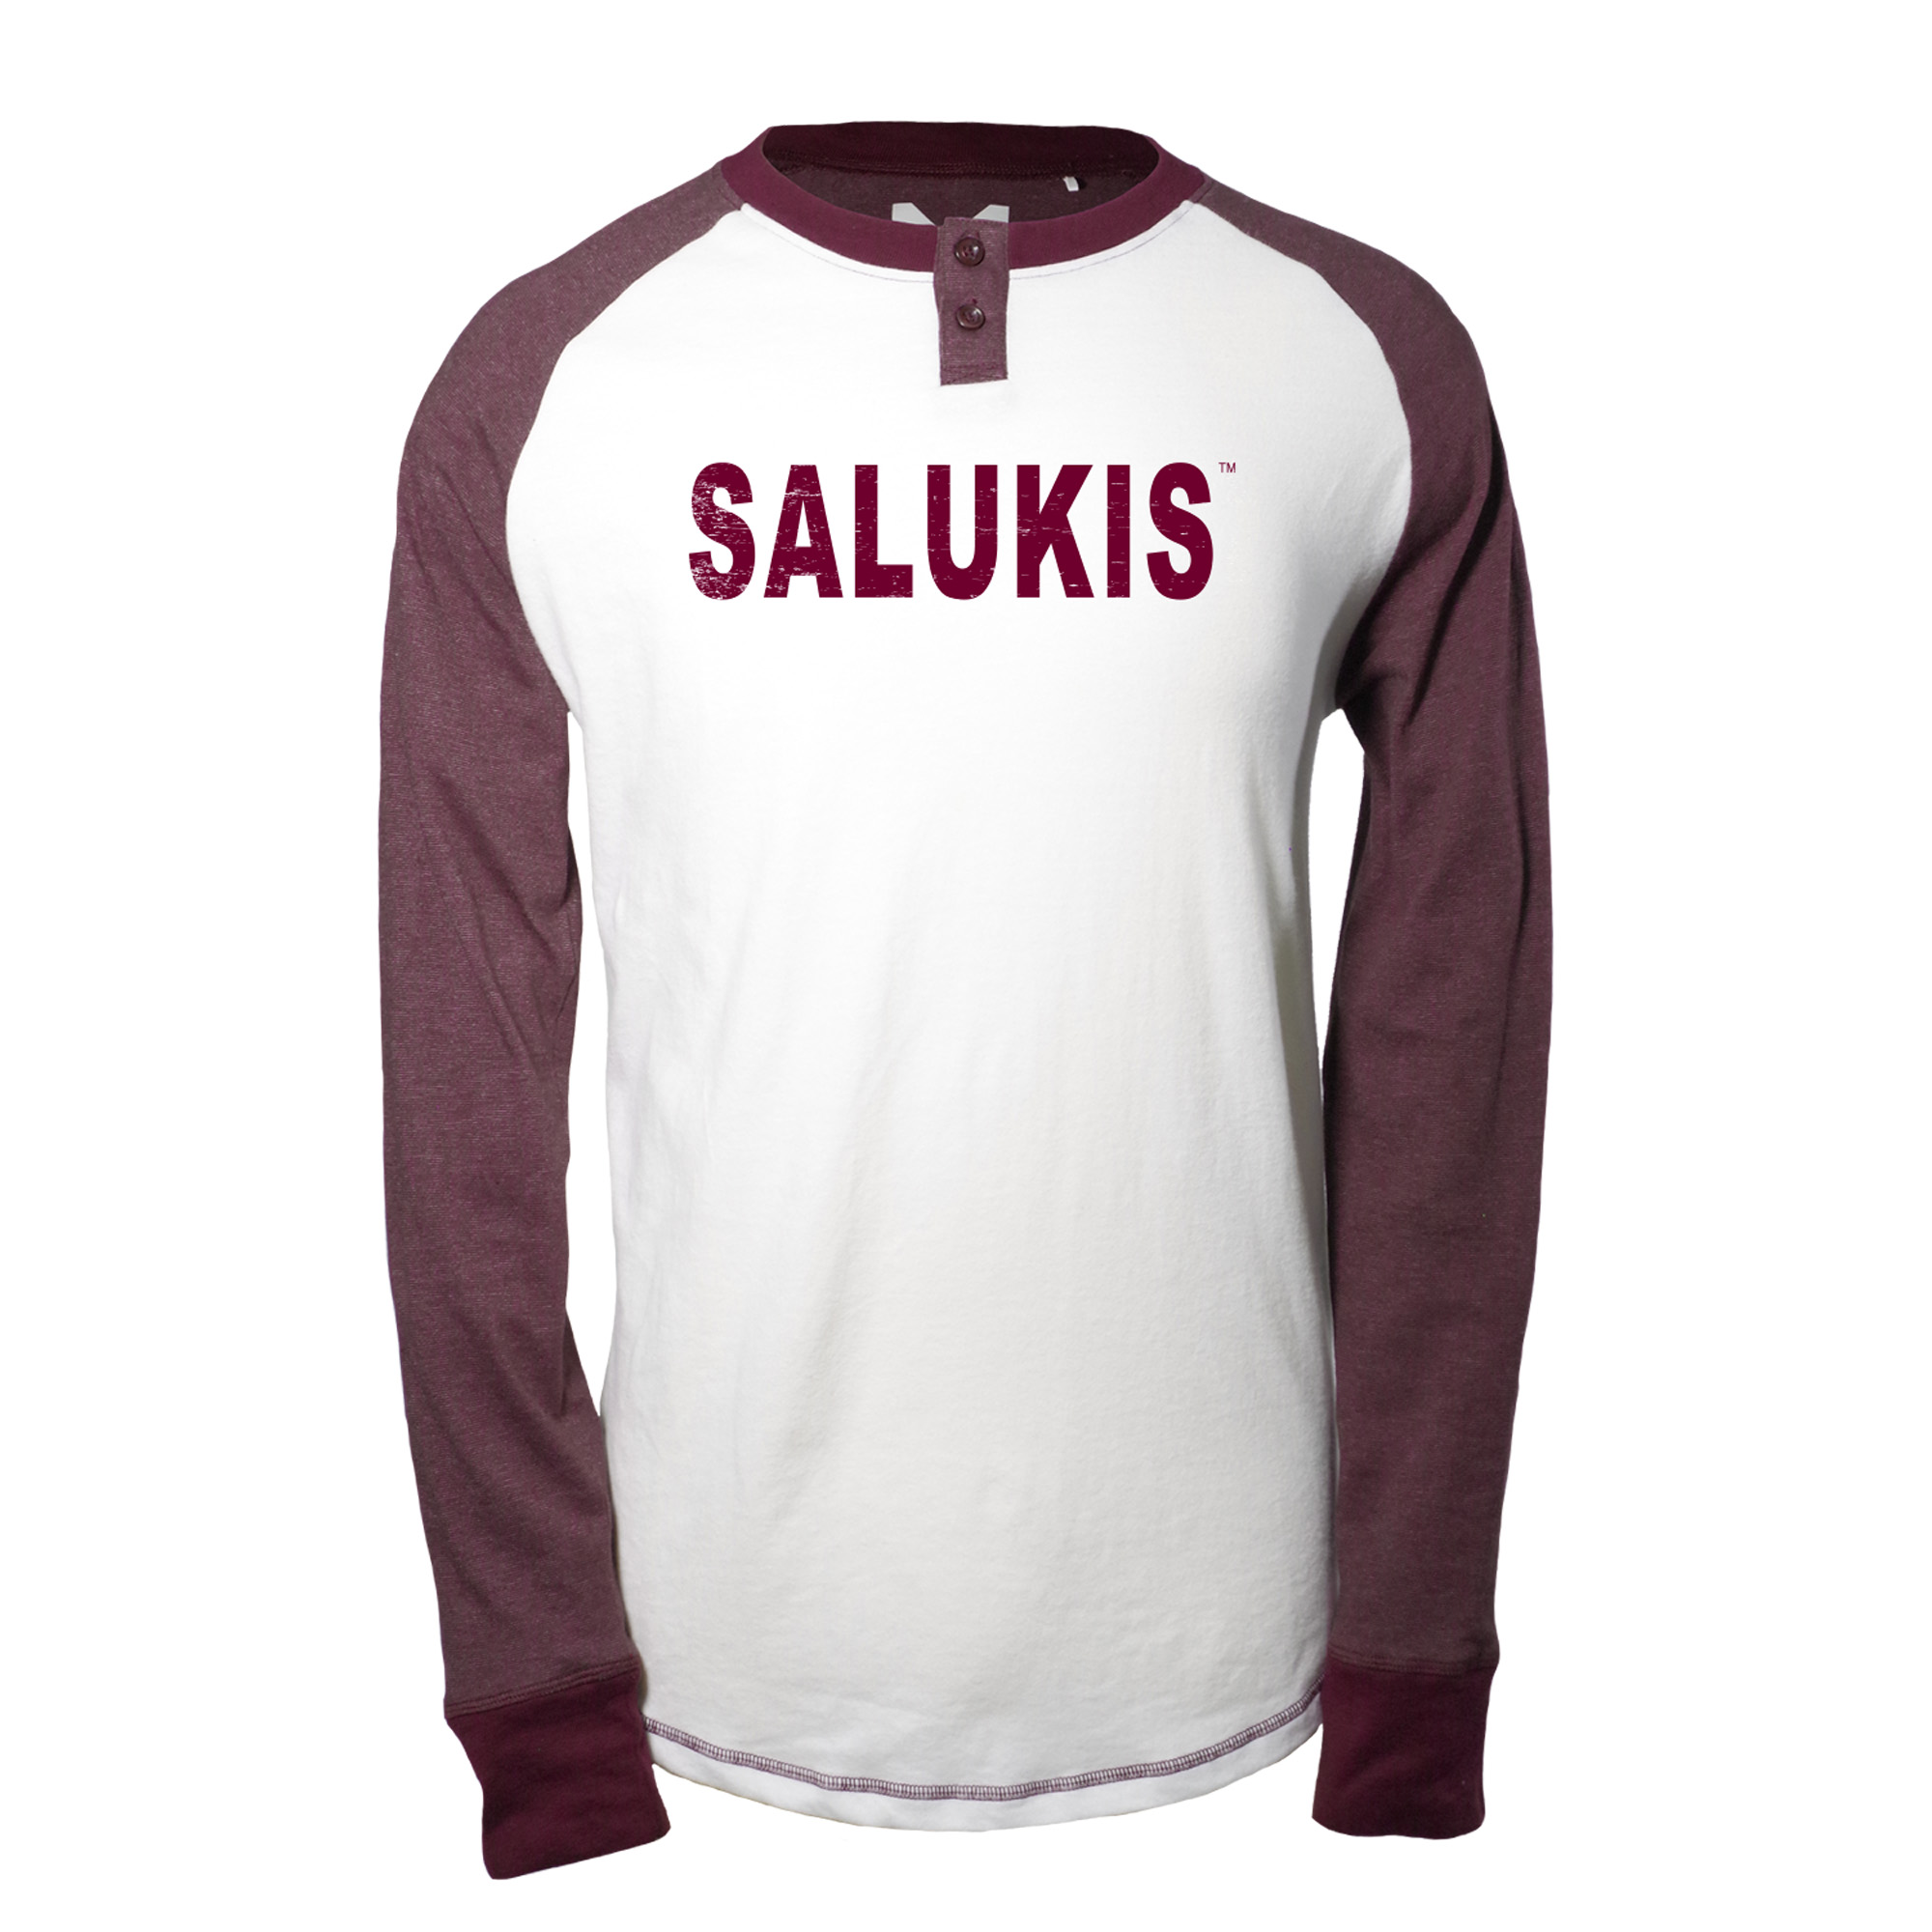 Image for the PAXTON® SALUKIS TWO TONE YALE HENLEY product